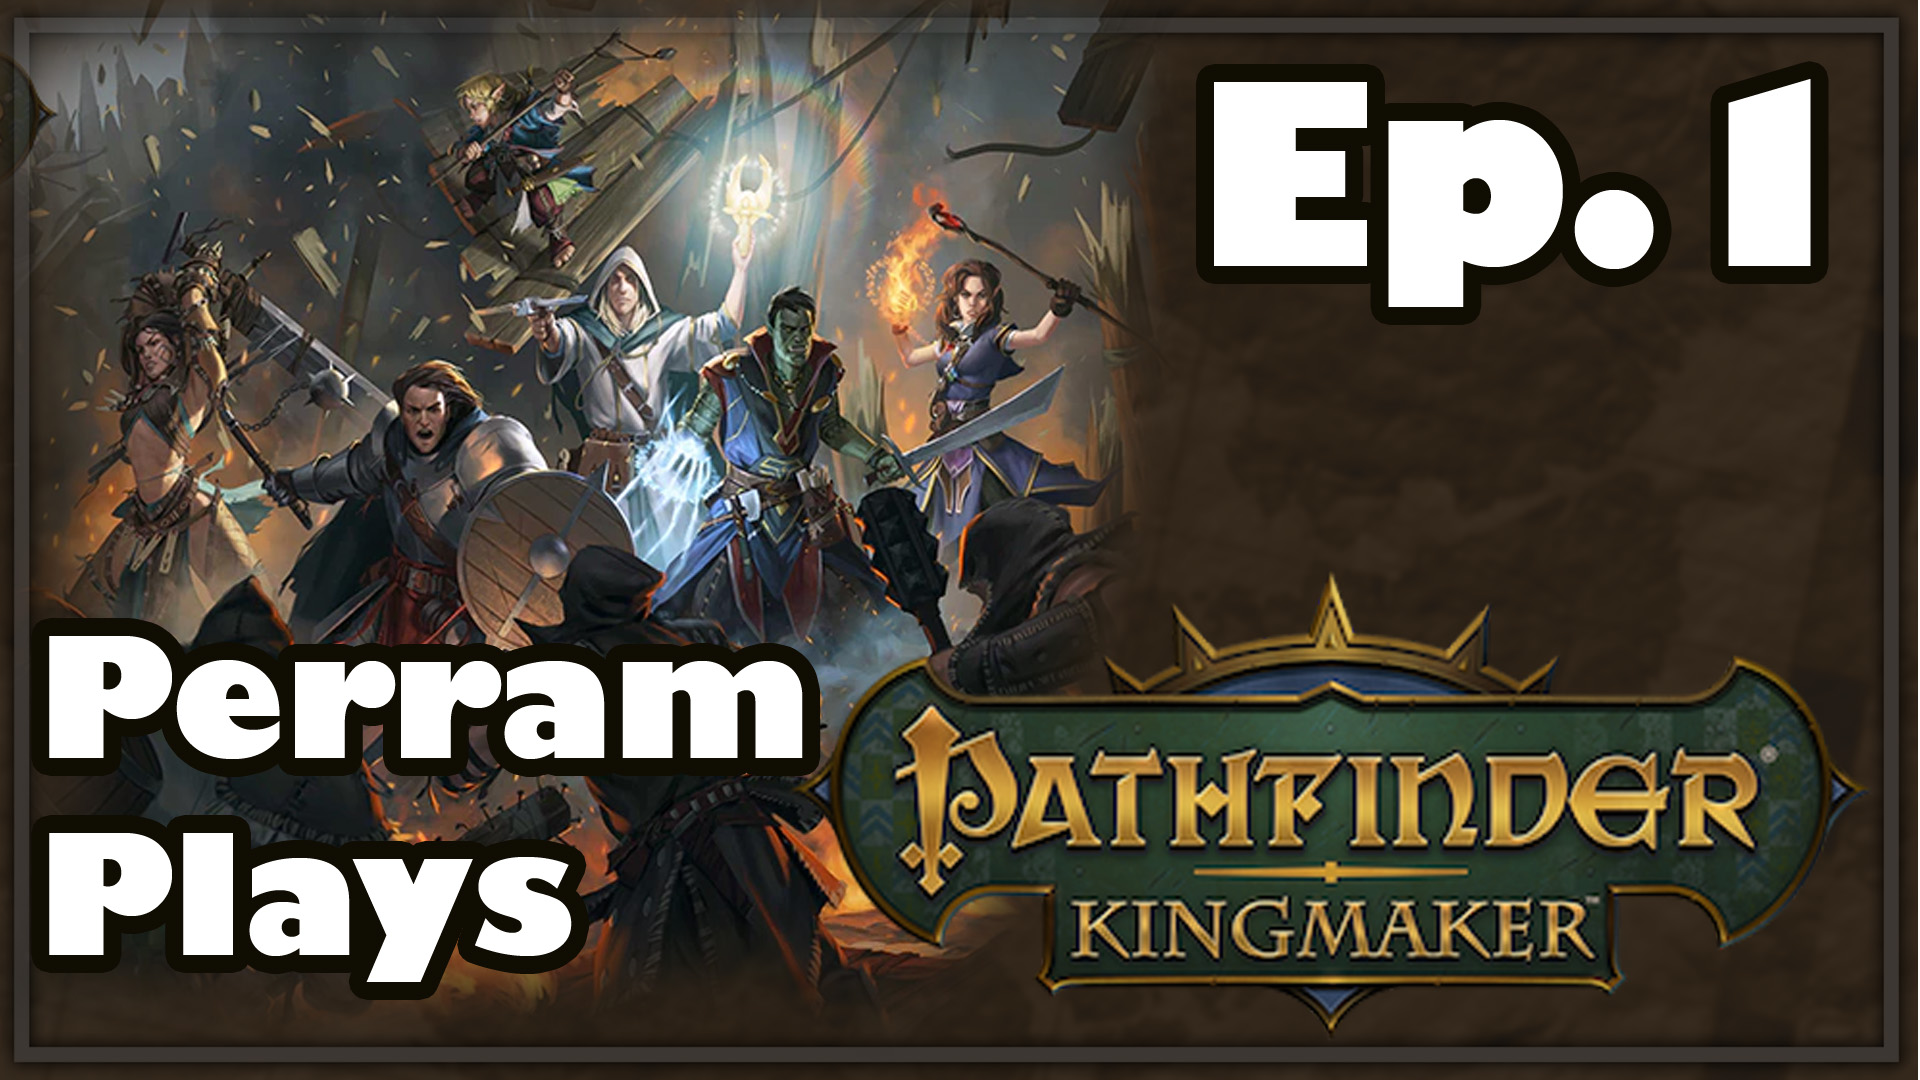 Perram Plays Pathfinder: Kingmaker Episode 1